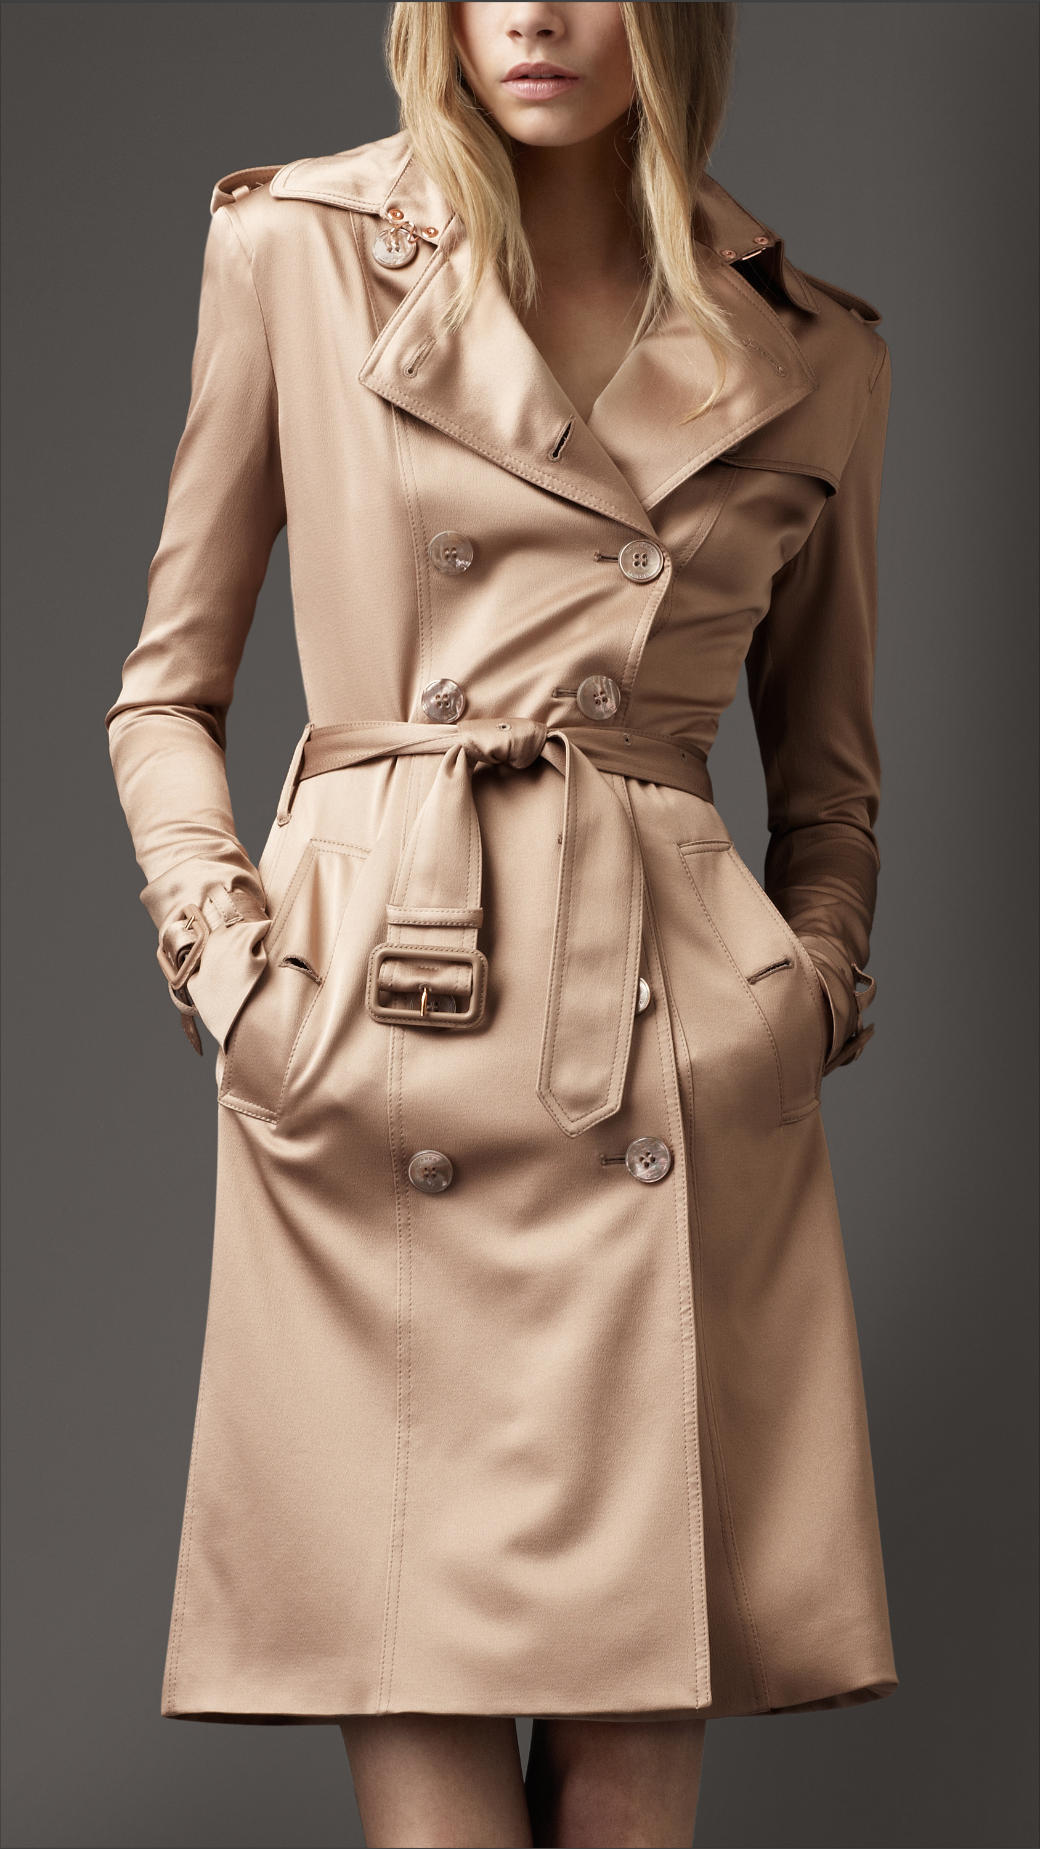 burberry handbags outlet sale 0aho  burberry satin trench coat